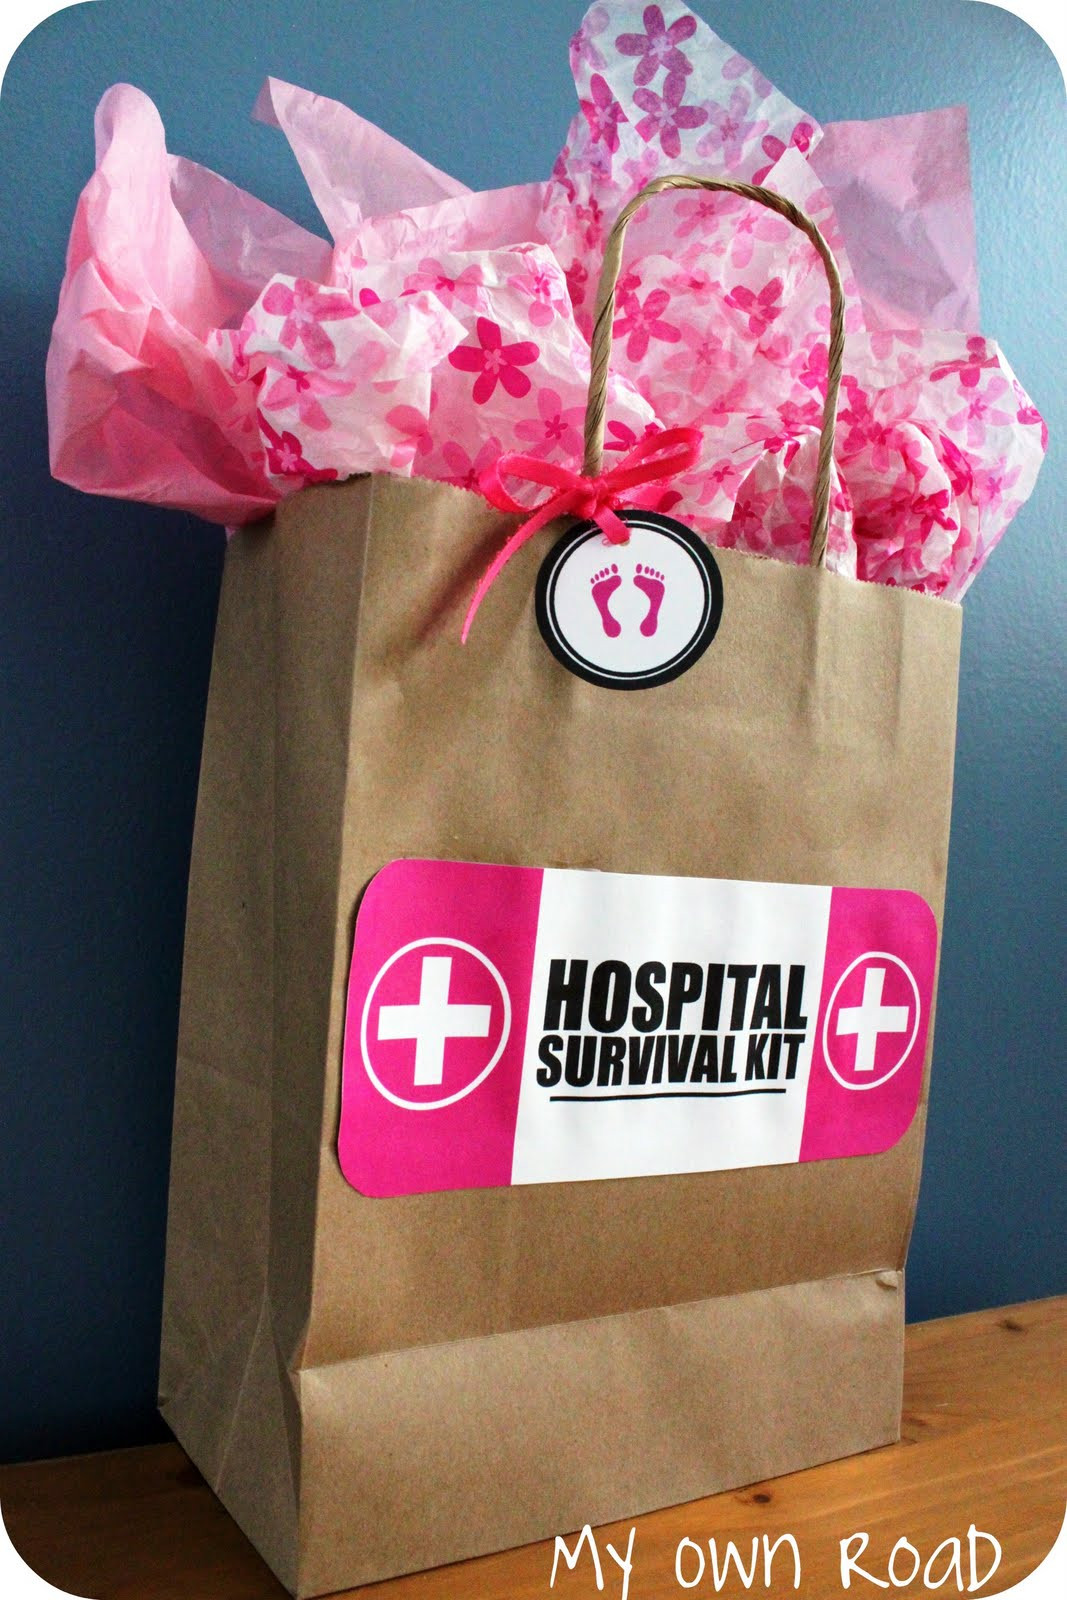 Best ideas about Baby Shower Gift Ideas For Mom . Save or Pin Hospital Survival Kit Baby Shower Gift Now.